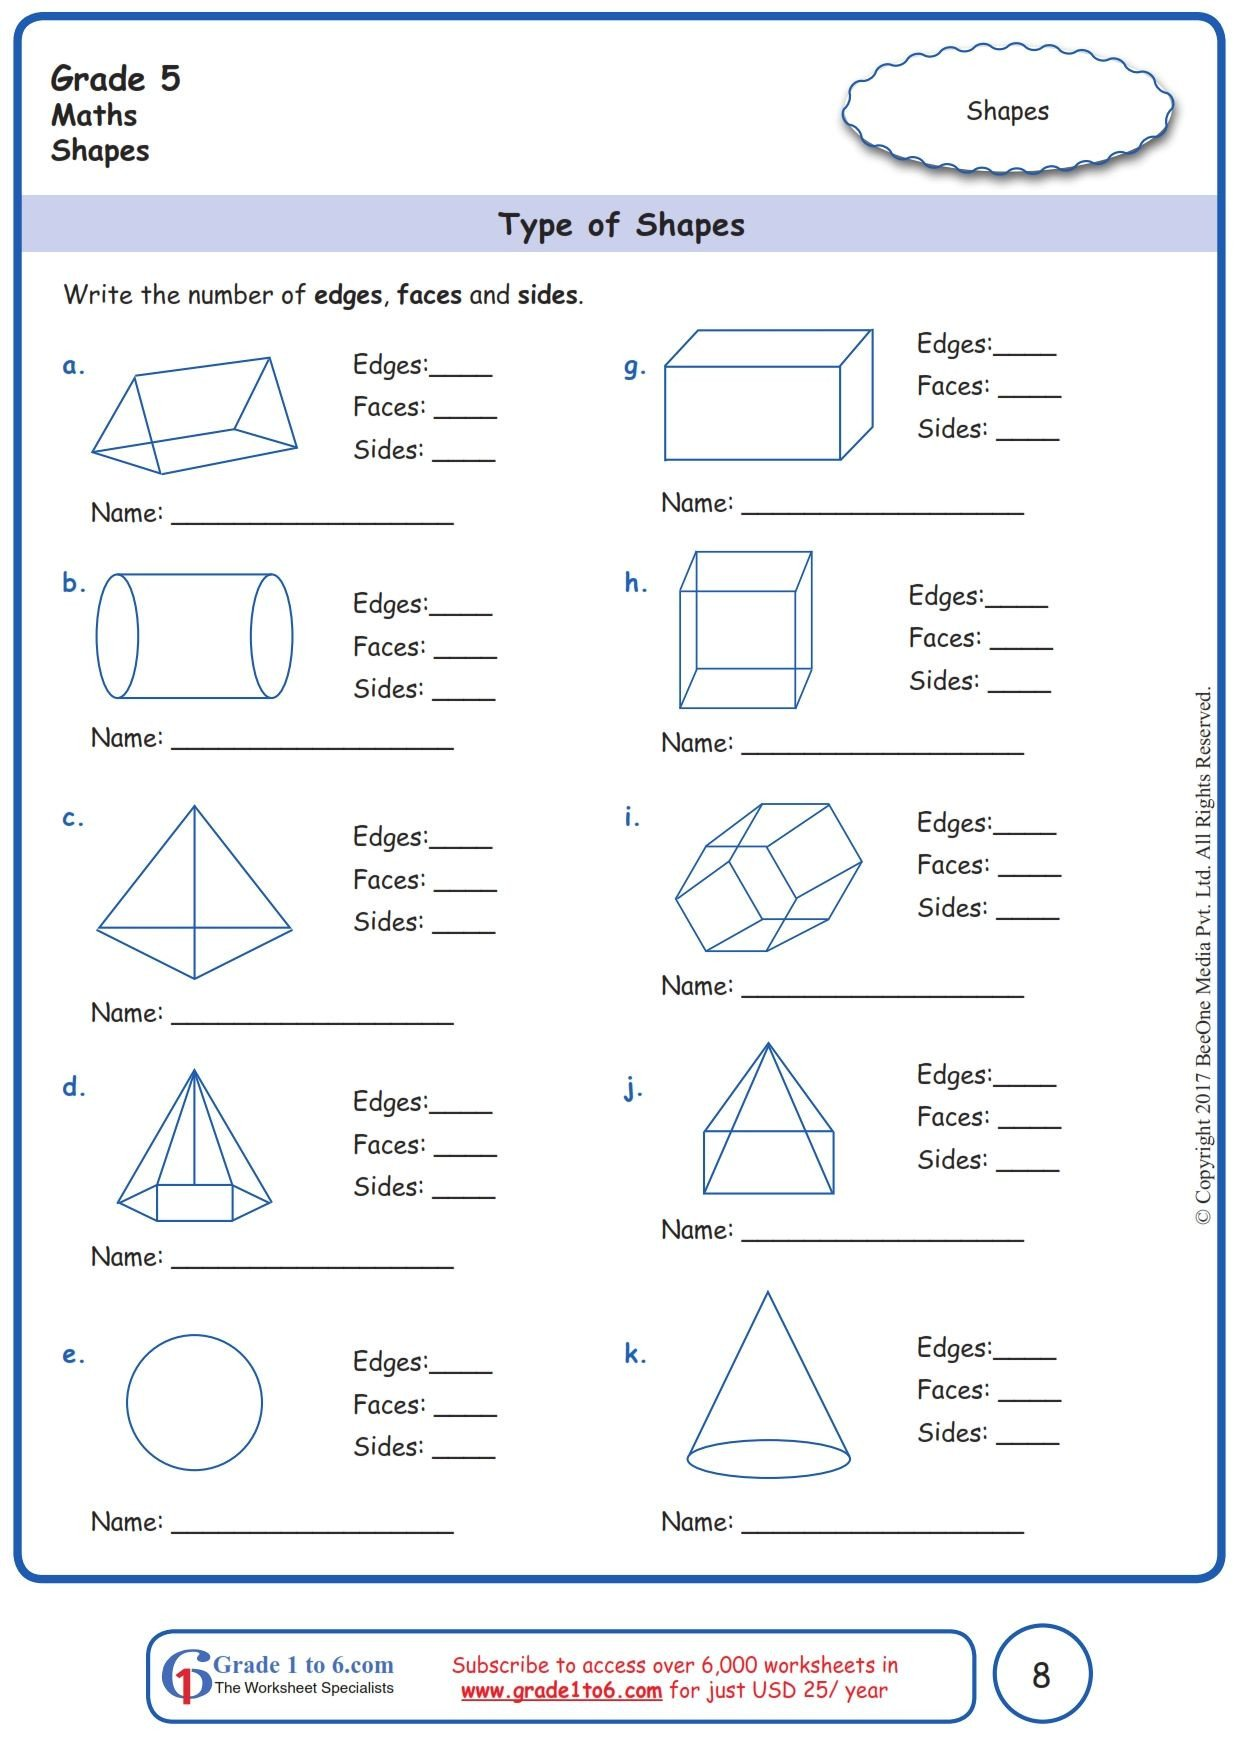 Polygon Worksheets 5th Grade Worksheet Grade 5 Math Type Of Shapes In 2020